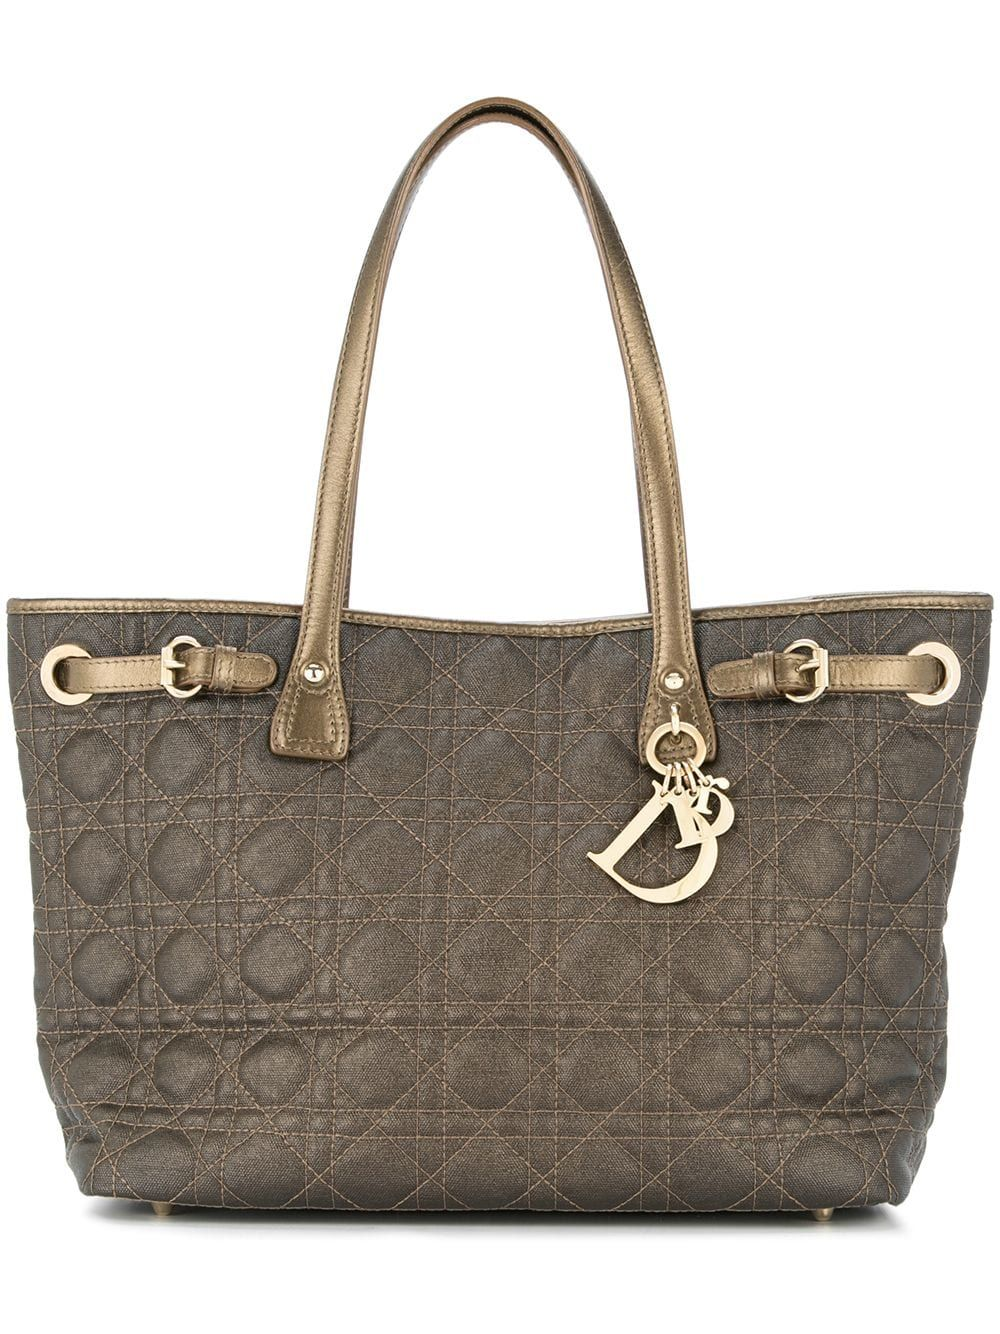 7c143a3bc CHRISTIAN DIOR PRE-OWNED Lady Dior Cannage Shoulder Bag - Brown in ...